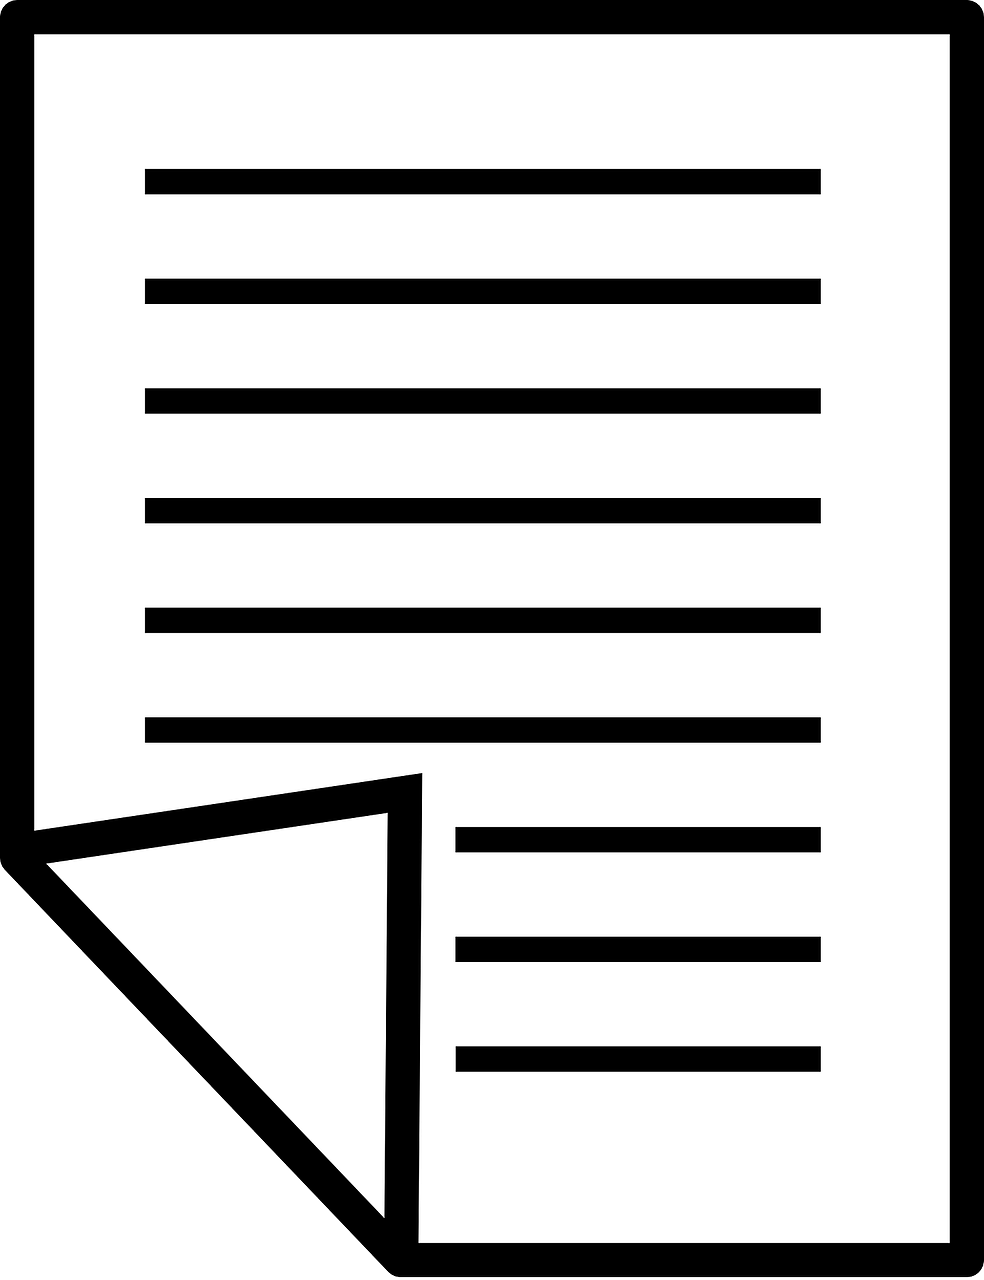 symbol paper Black universal recycling symbol ♼ 9852: 267c : recycled paper symbol.